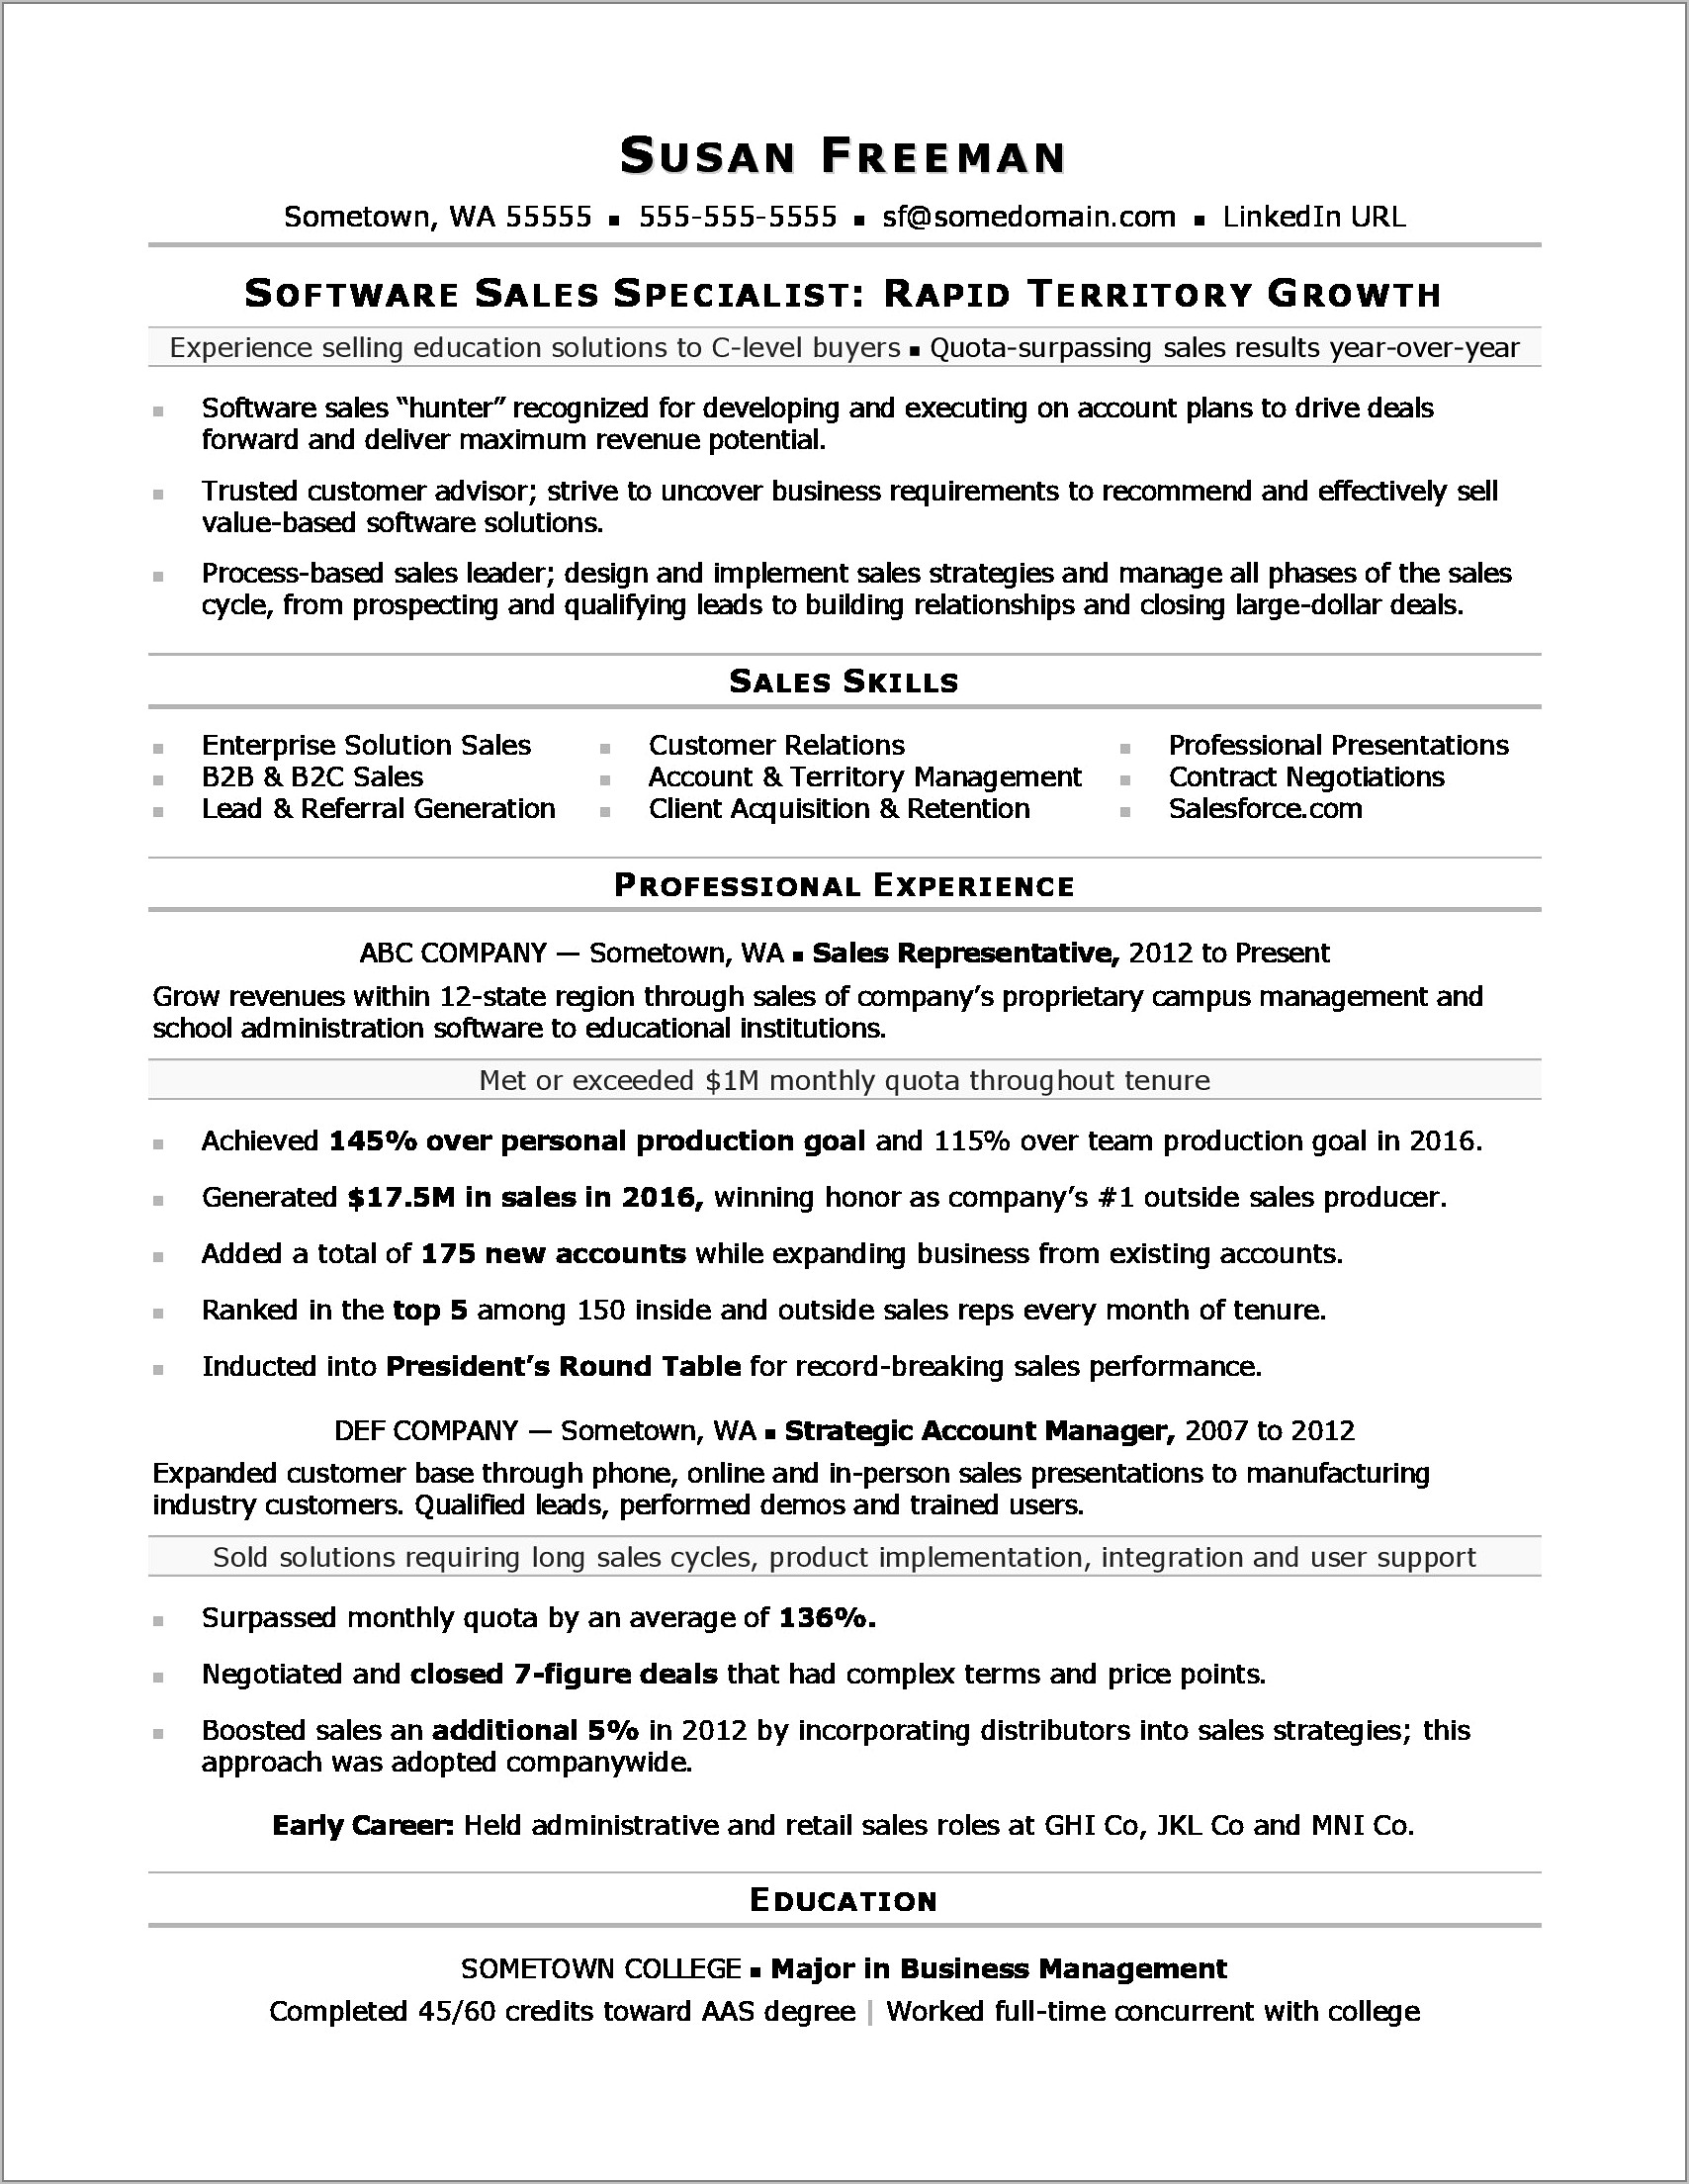 Resume Examples For Sales Jobs